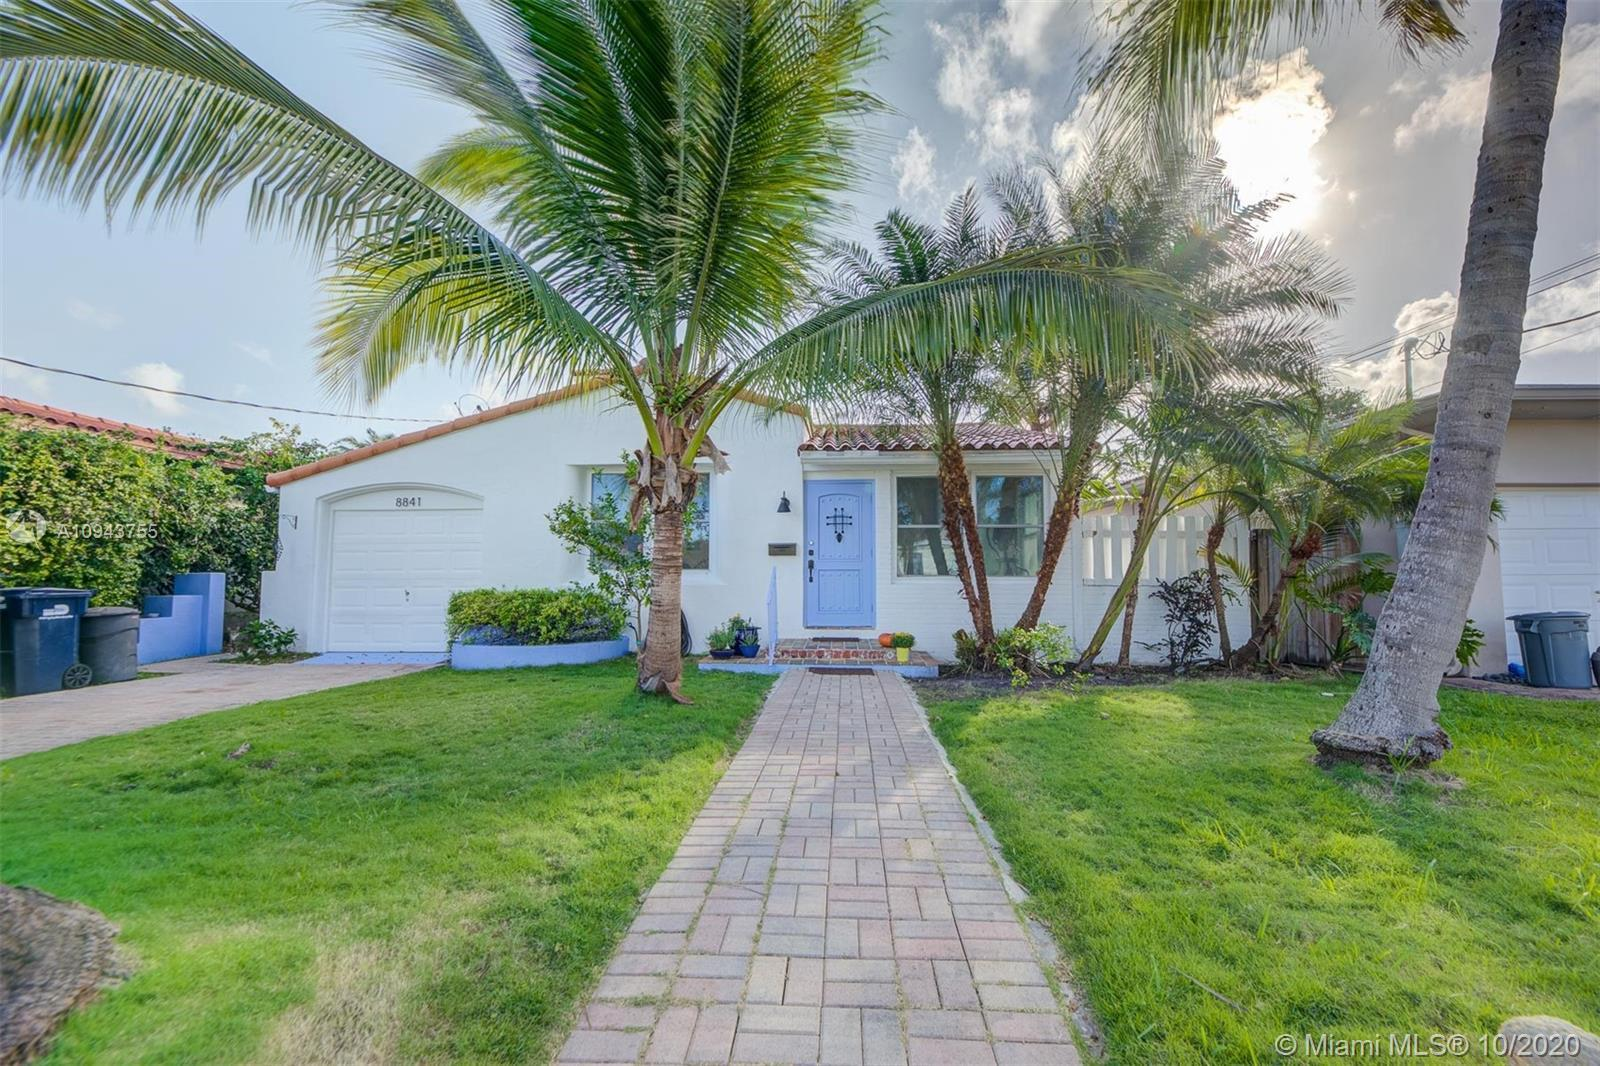 This light and airy 1930's architectural gem has been completely modernized while maintaining its or